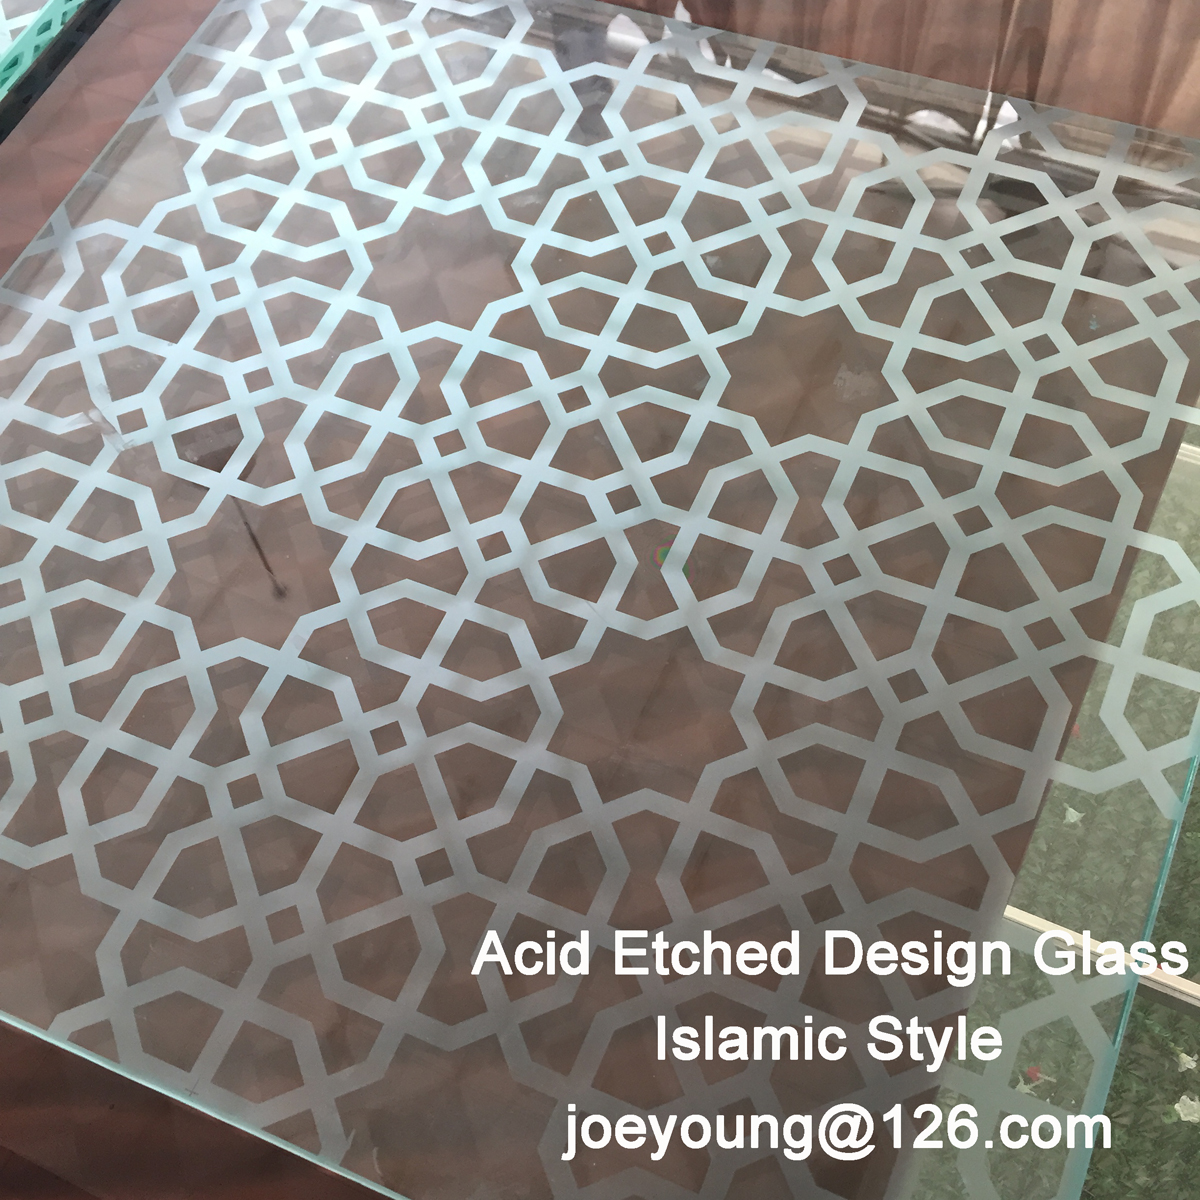 Acid etched glass with design